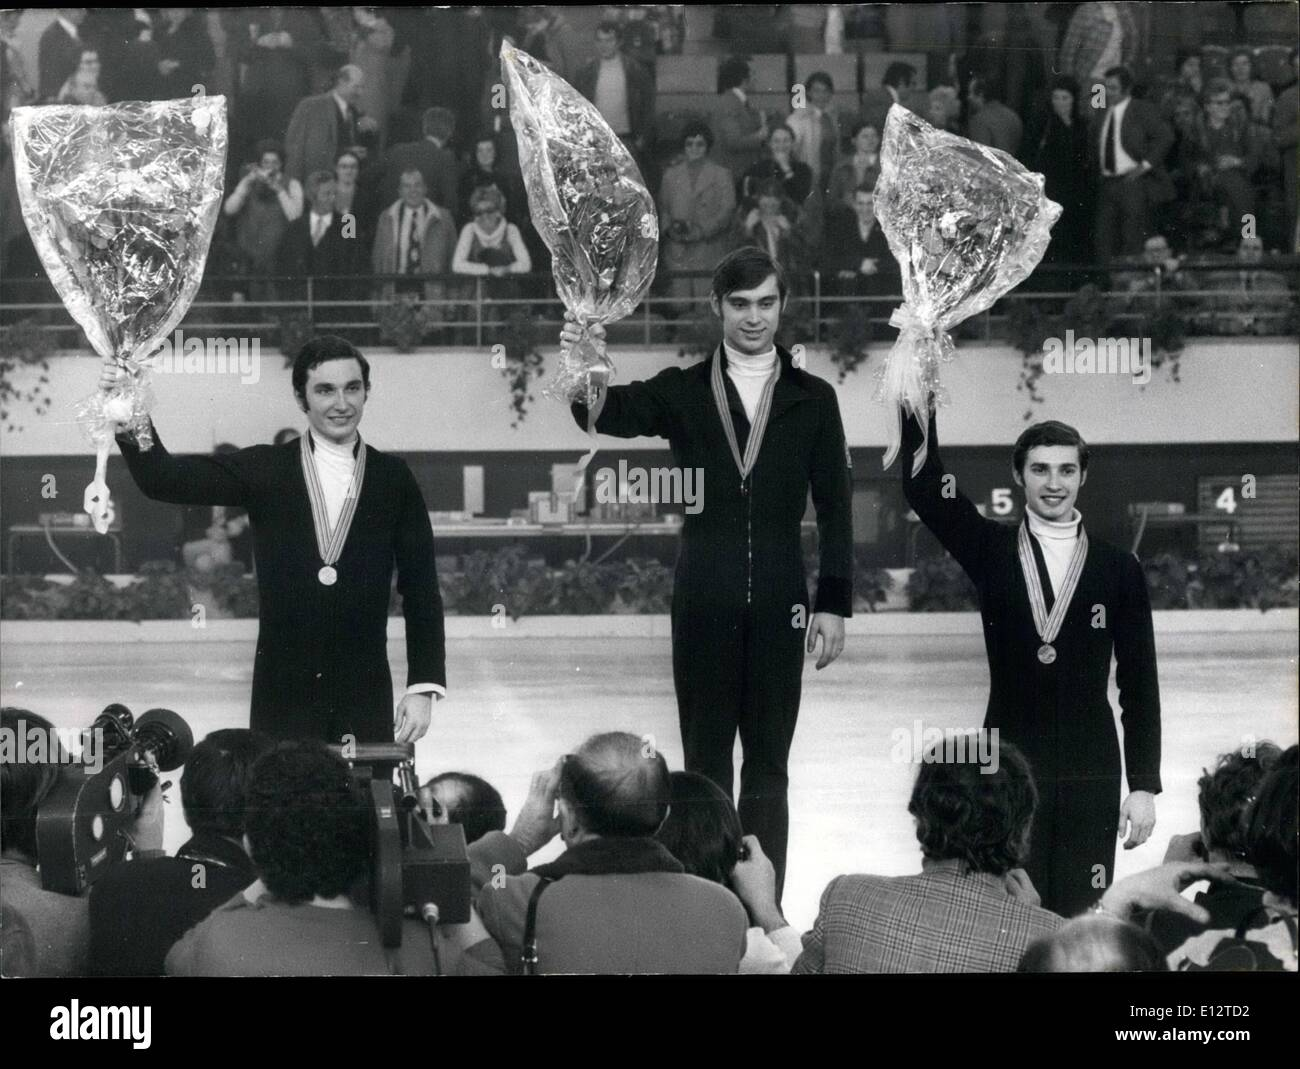 Feb. 24, 2012 - CZECH SKATER ONDREJ NEPELA WON THE FINALS OF THE WORLD FIGURE SKATING CHAMPIONSHIP HELD IN LYON, FRANCE. FRENCHMAN PATRICK PERA AND RUSSIAN SERGHEI TCHETVERU- . .IN CAME OUT SECOND AND THIRD. OPS ON THE ROSTRUM FROM LEFT TO RIGHT: PATRICK PERA ONDREJ NEPELA AND SERGHEI TCHETVRUKH. - Stock Image